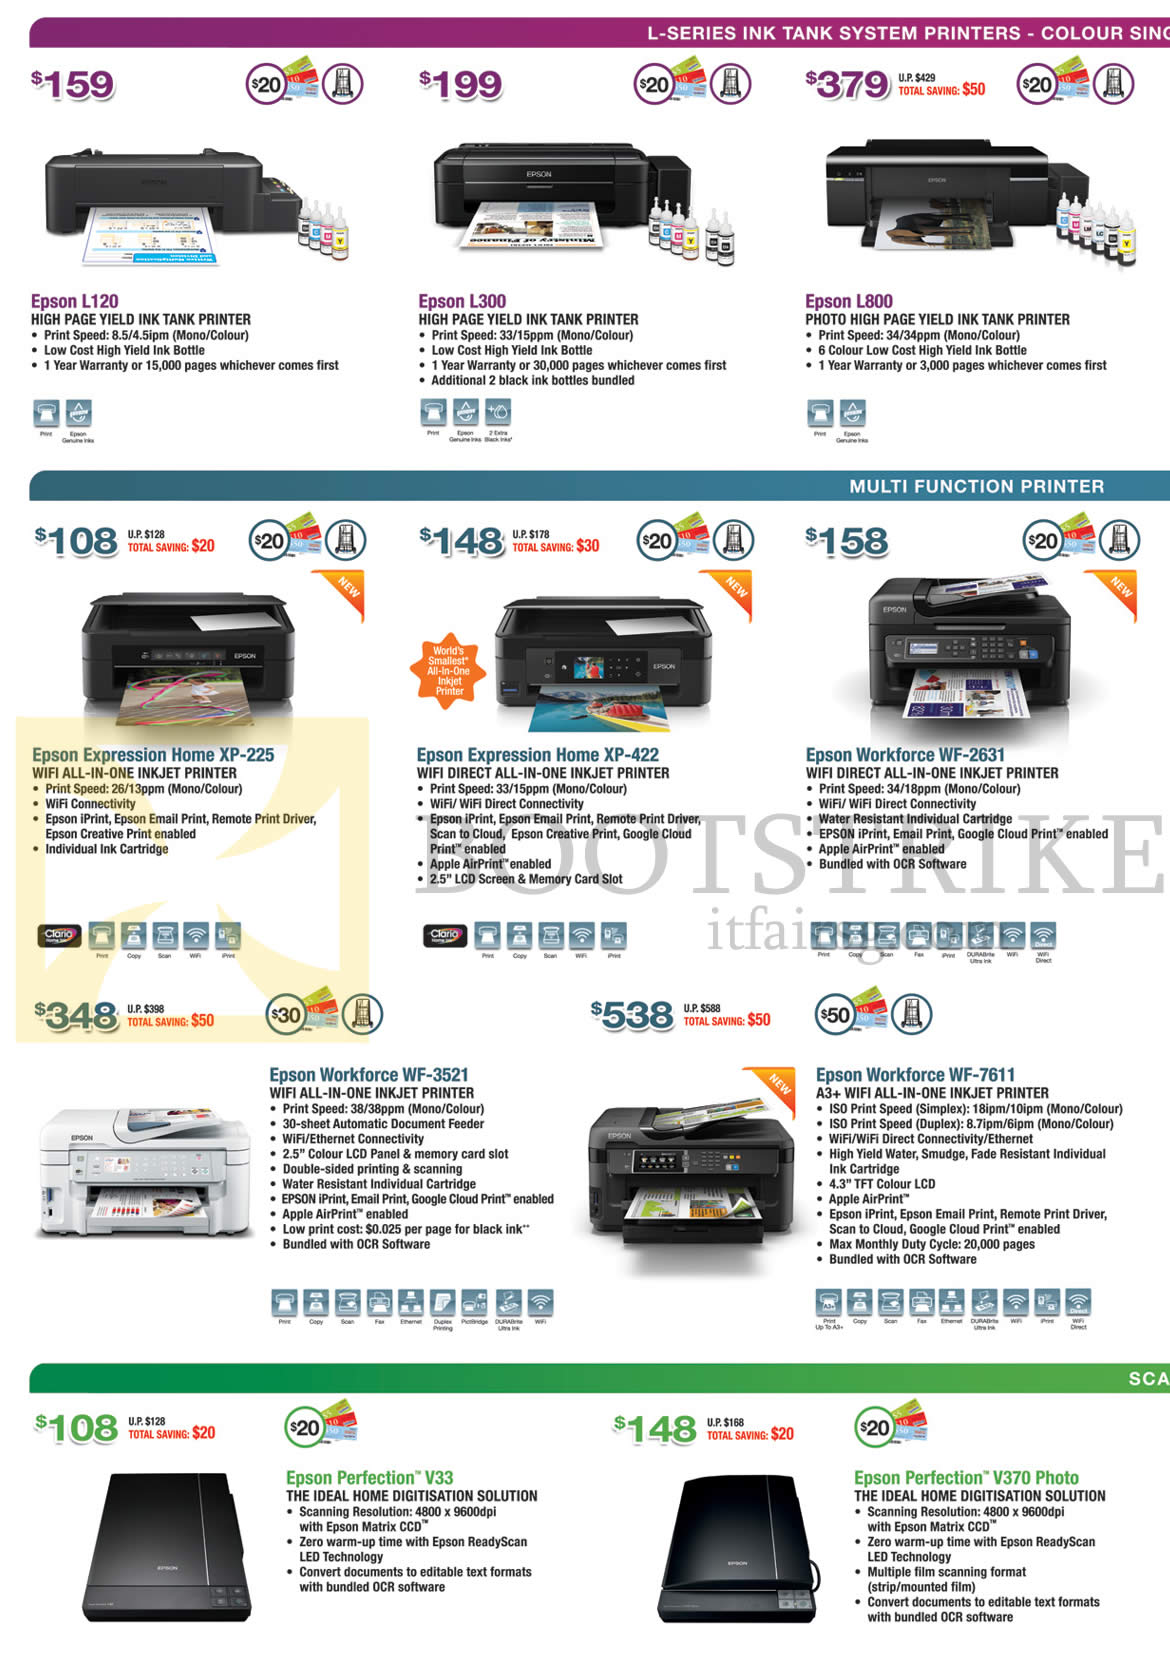 IT SHOW 2015 price list image brochure of Epson Printers Inkjet, Scanners, L120, L300, L800, Expression Home XP-225, XP-422, Workforce WF-2631, WF-3521, WF-7611, Perfection V33, V370 Photo